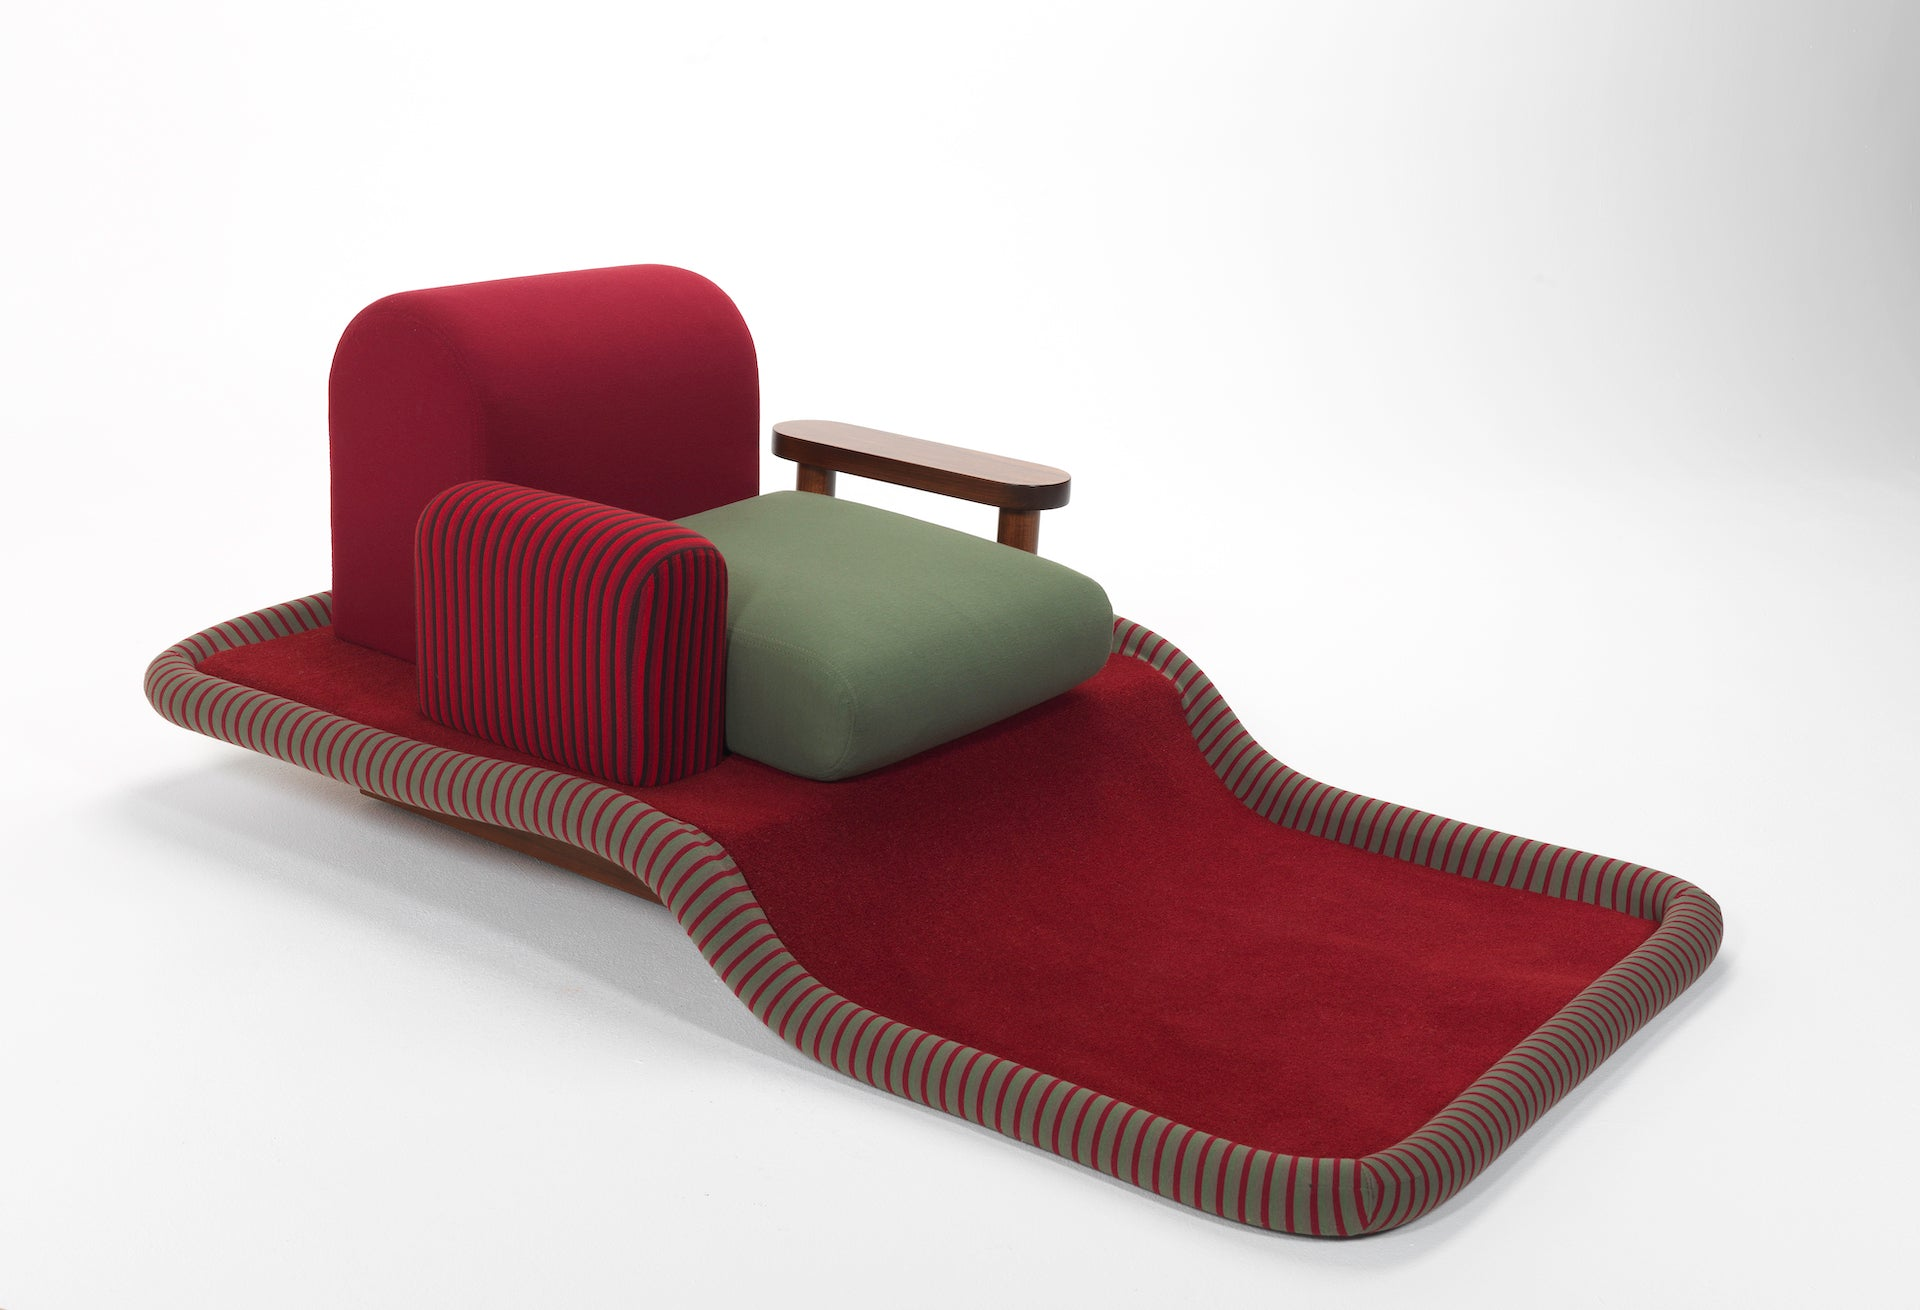 Flying Carpet Armchair by Ettore Sottsass, 1974; from the Centre Pompidou collection; on view now at Design Parade Toulon. Photo © Adagp, Paris; Centre Pompidou, MNAM-CCI/Philippe Migeat/Dist. RMN-GP